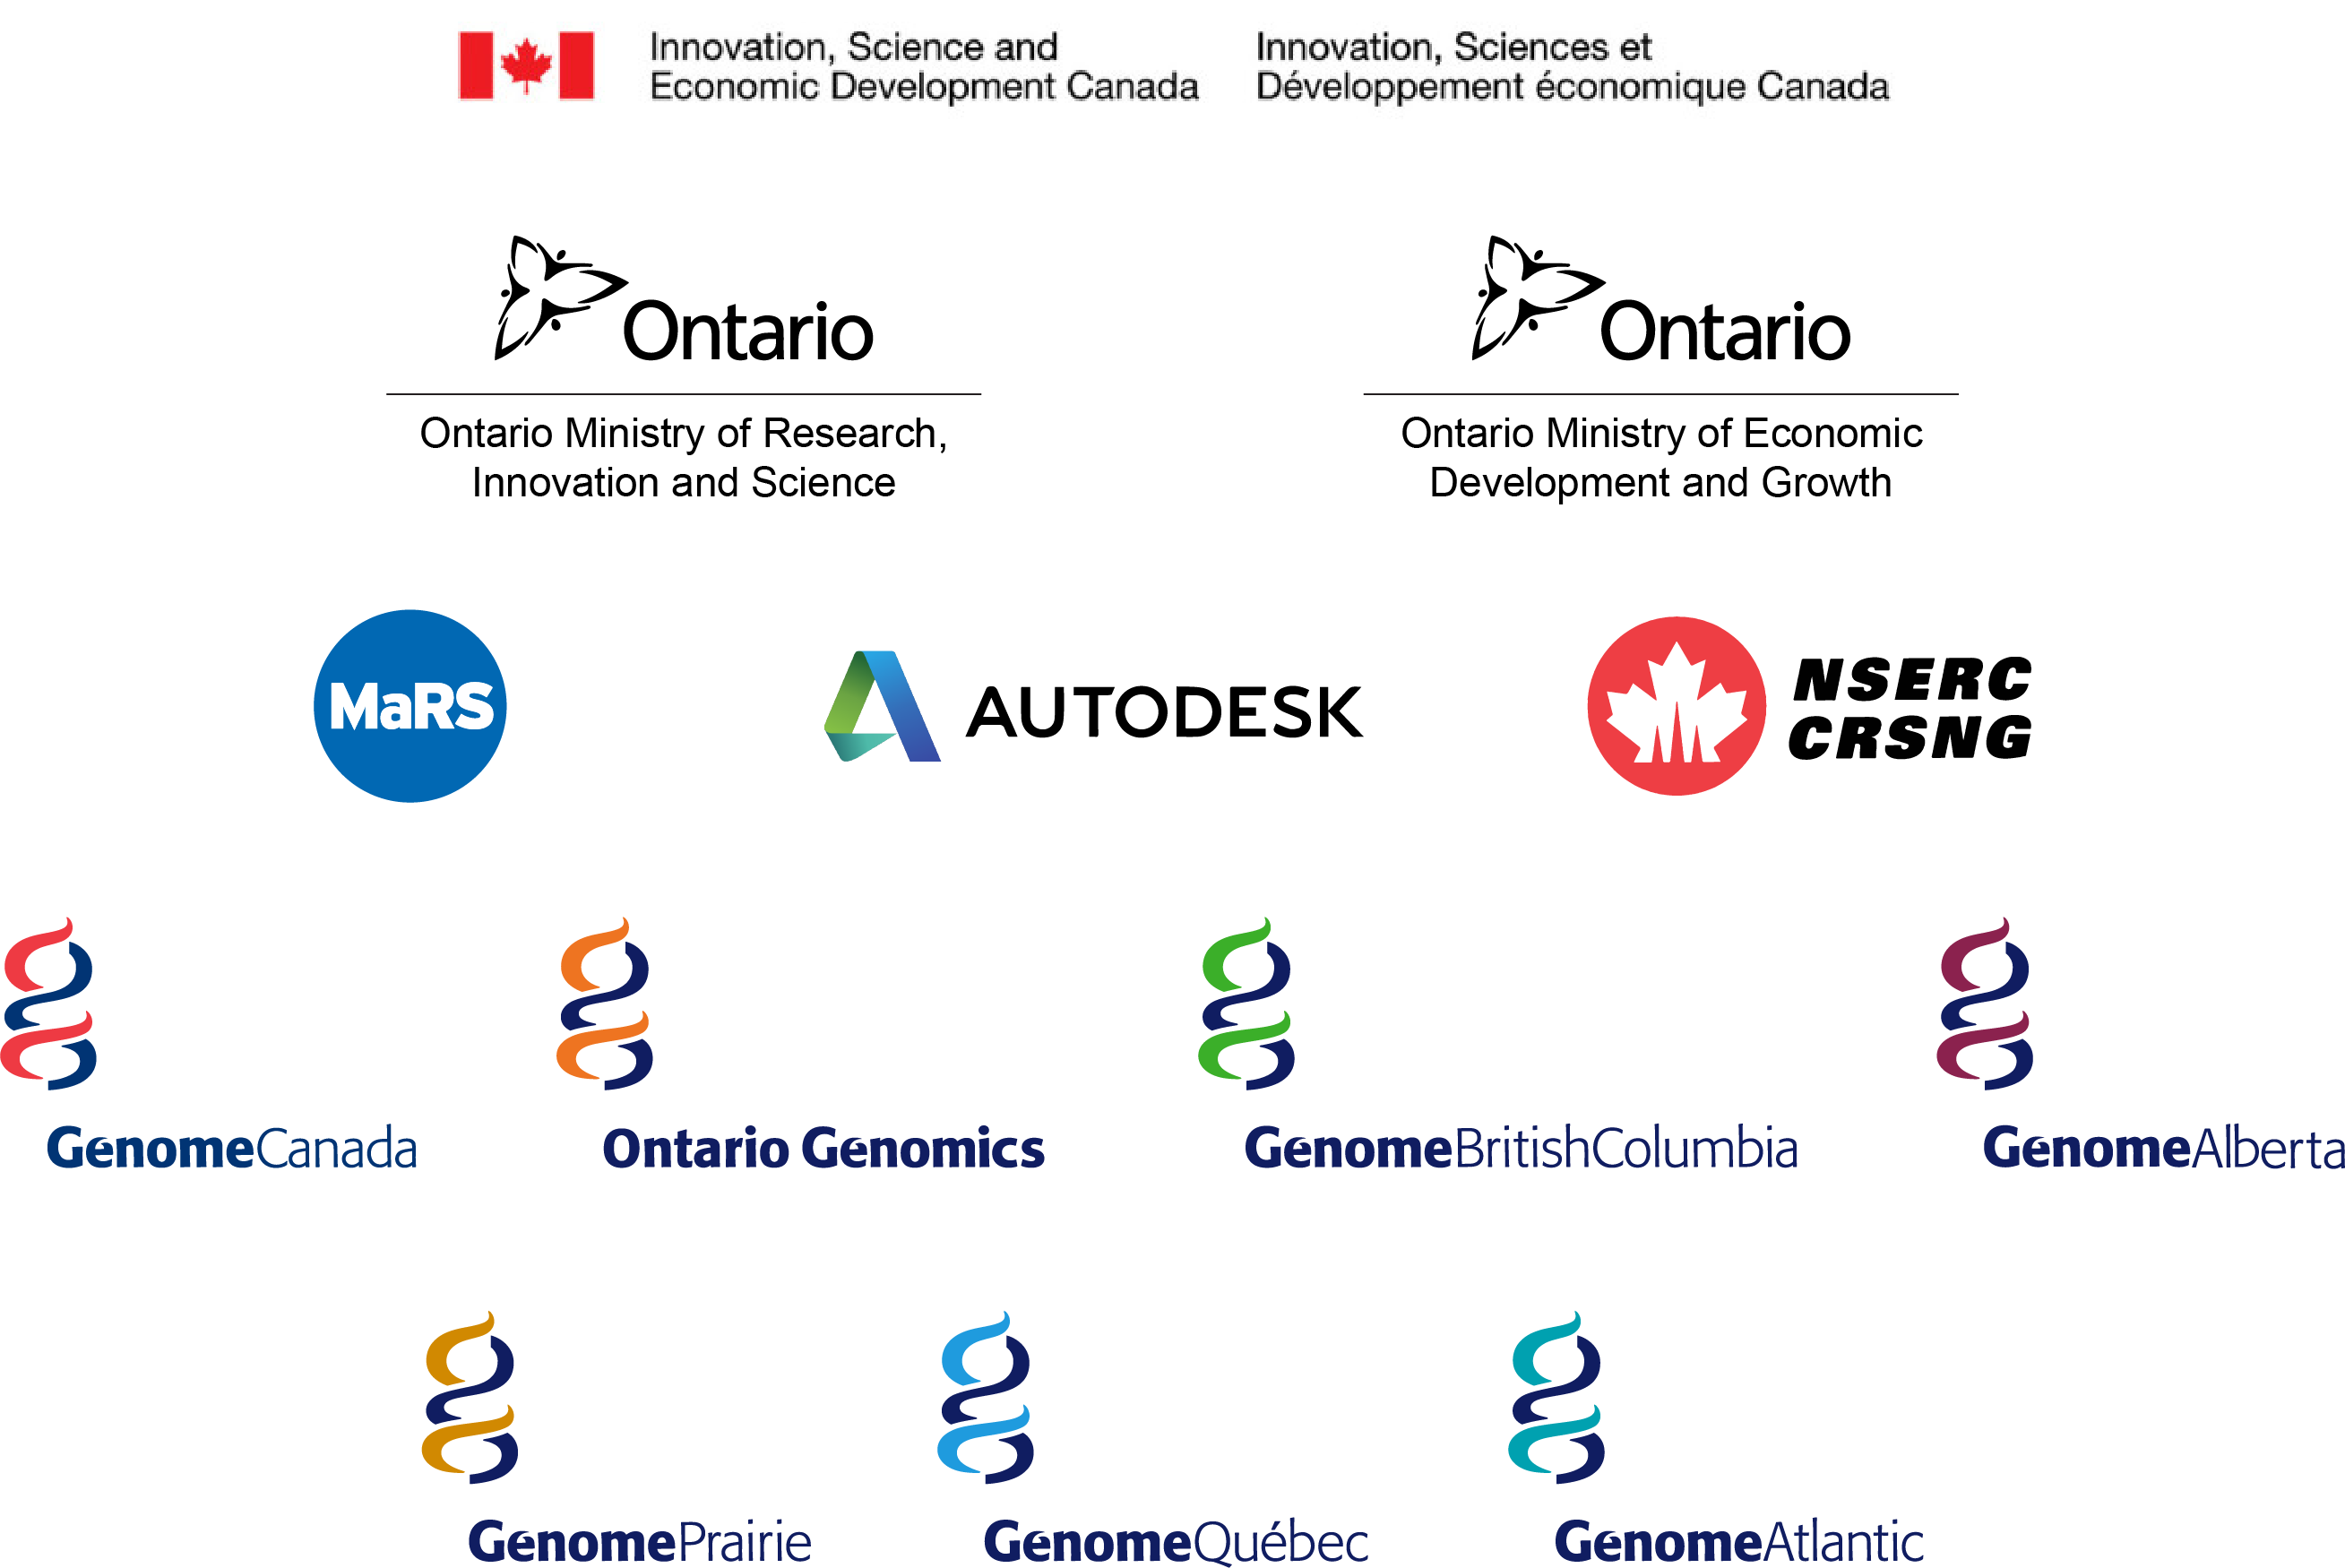 Genome Canada Enterprise; Innovation, Science and Economic Development Canada; Ontario Ministry of Research, Innovation and Science; Ontario Ministry of Economic Development and Growth; Natural Sciences and Engineering Research Council; MaRS Discovery District; Autodesk